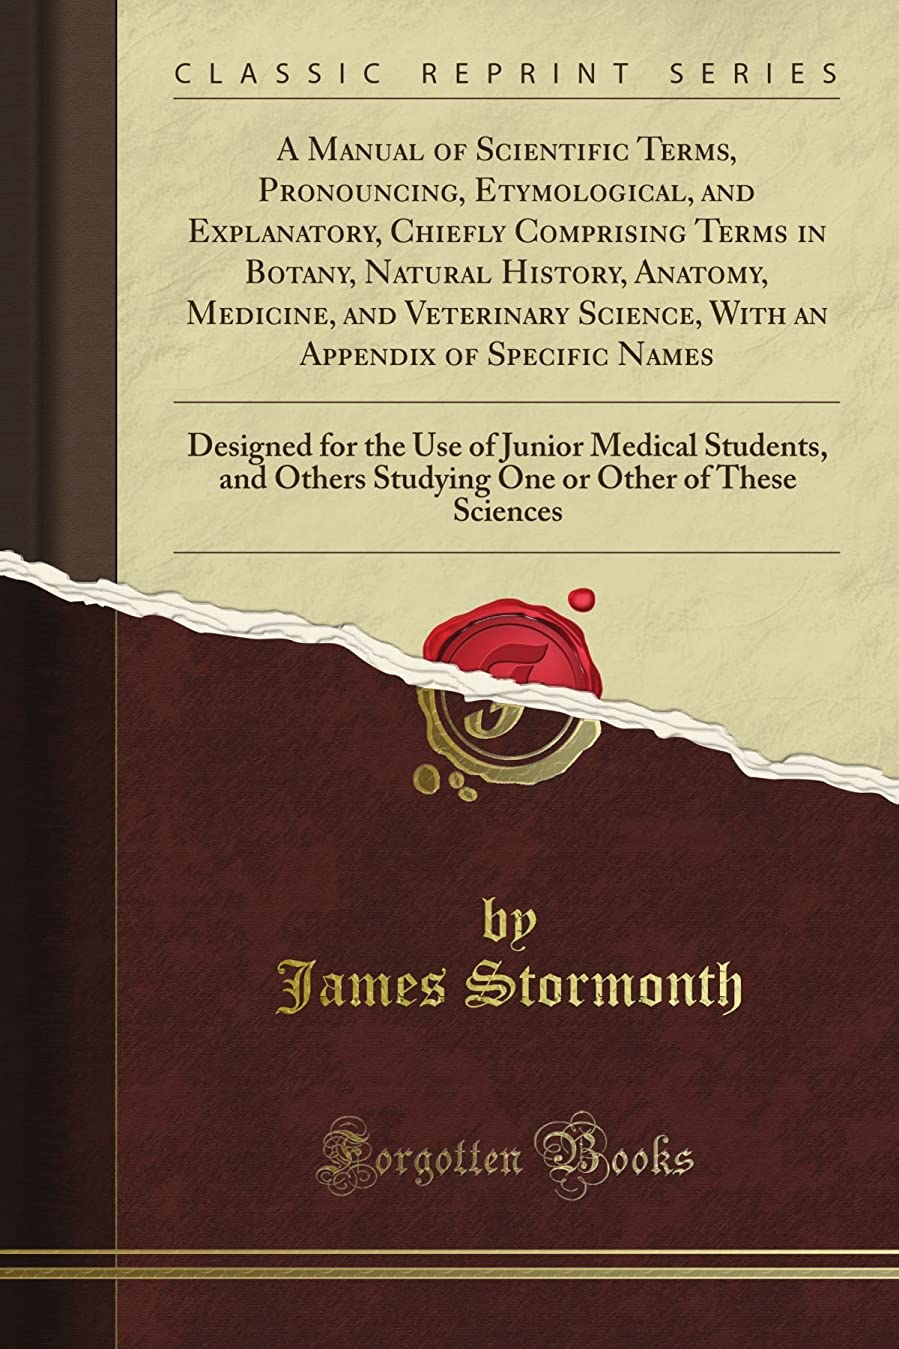 A Manual of Scientific Terms, Pronouncing, Etymological, and Explanatory, Chiefly Comprising Terms in Botany, Natural History, Anatomy, Medicine, and Veterinary Science, With an Appendix of Specific Names (Classic Reprint)